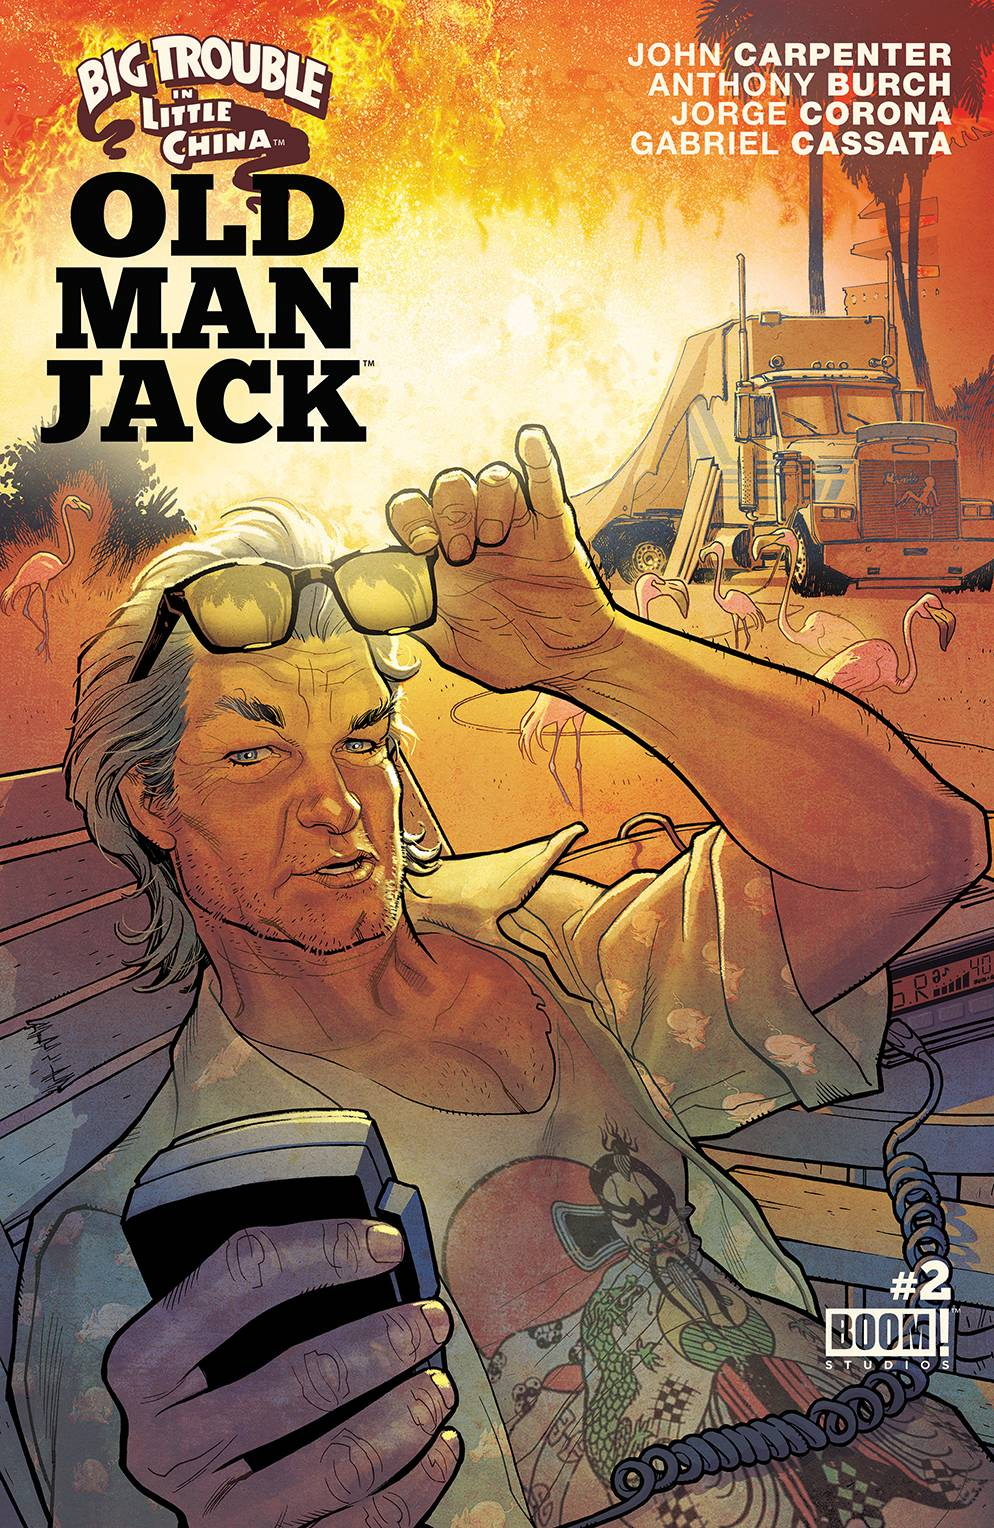 BIG TROUBLE IN LITTLE CHINA OLD MAN JACK 2 MAIN & MIX.jpg